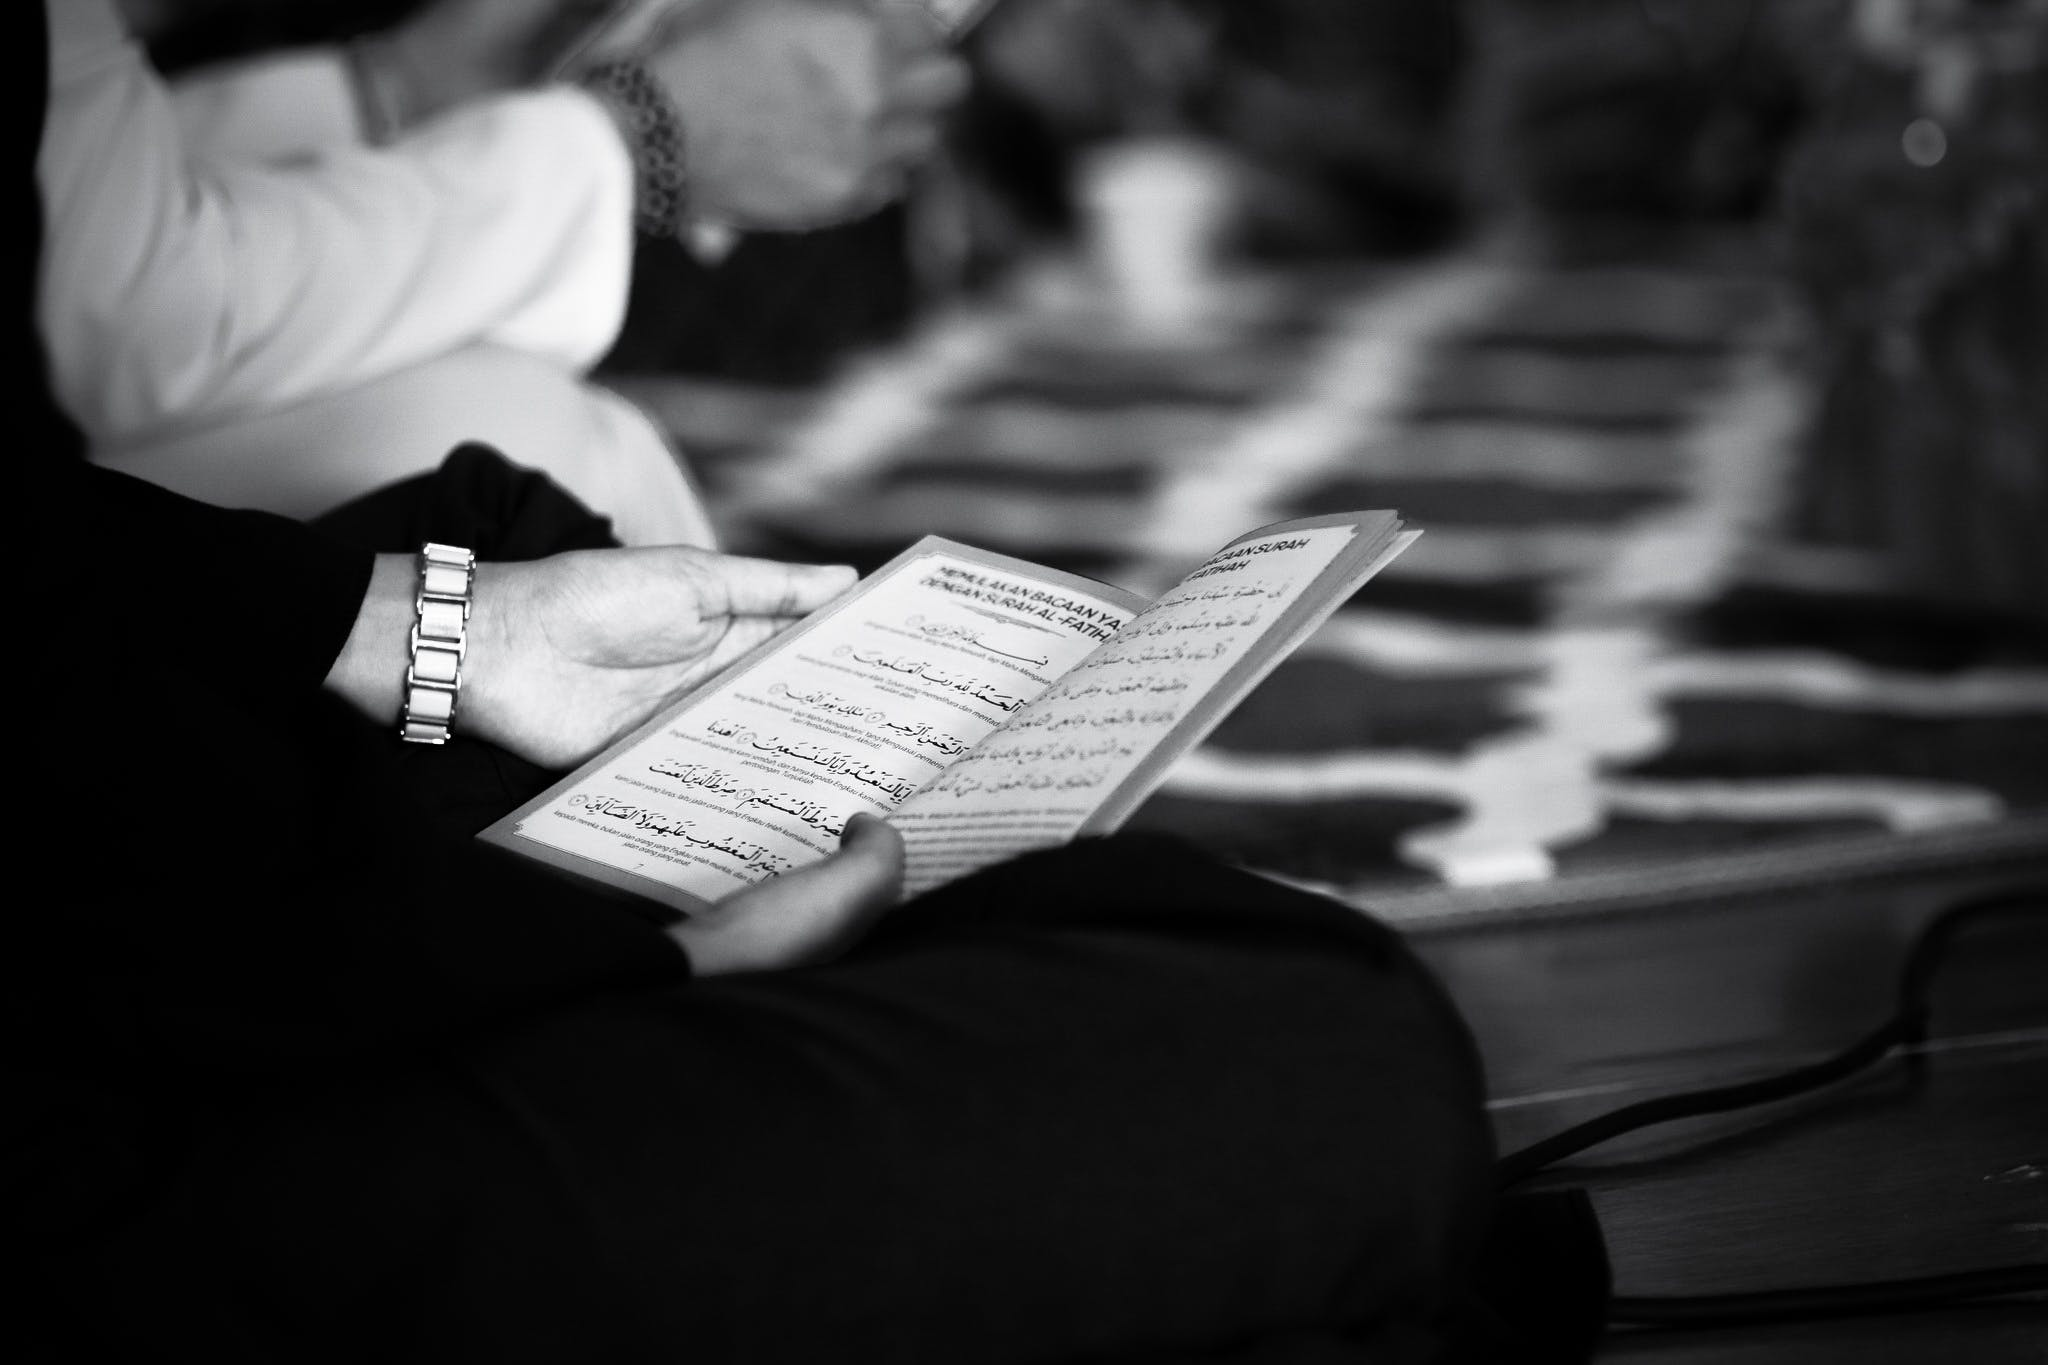 Grayscale Photography of a Person Holding Book